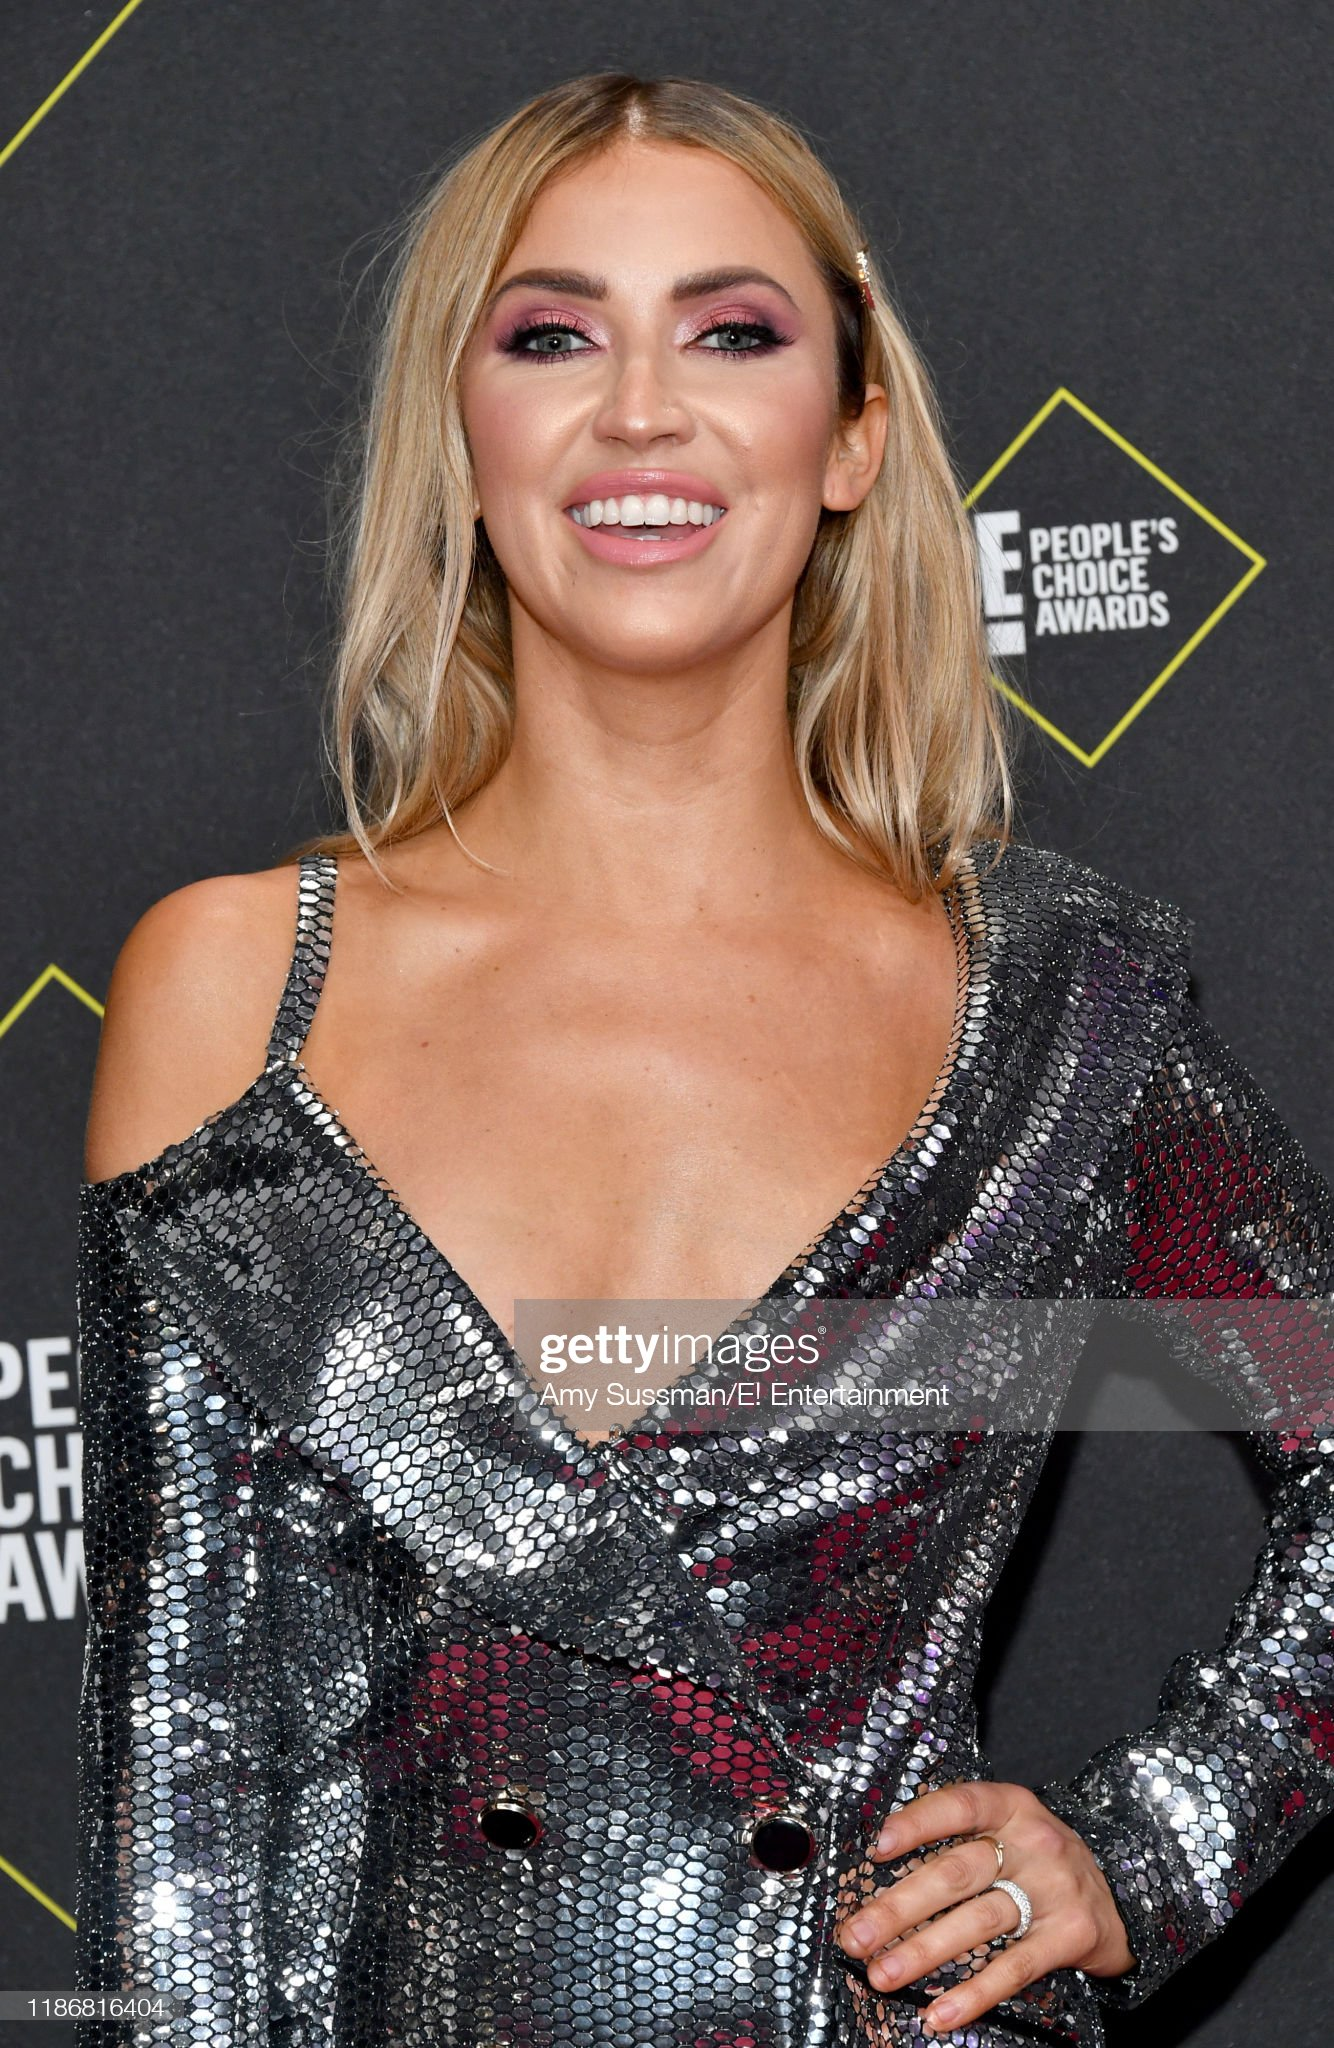 Kaitlyn Bristowe & Jason Tartick - Bachelorette 11 - Discussion  - Page 8 Pictured-kaitlyn-bristowe-arrives-to-the-2019-e-peoples-choice-awards-picture-id1186816404?s=2048x2048